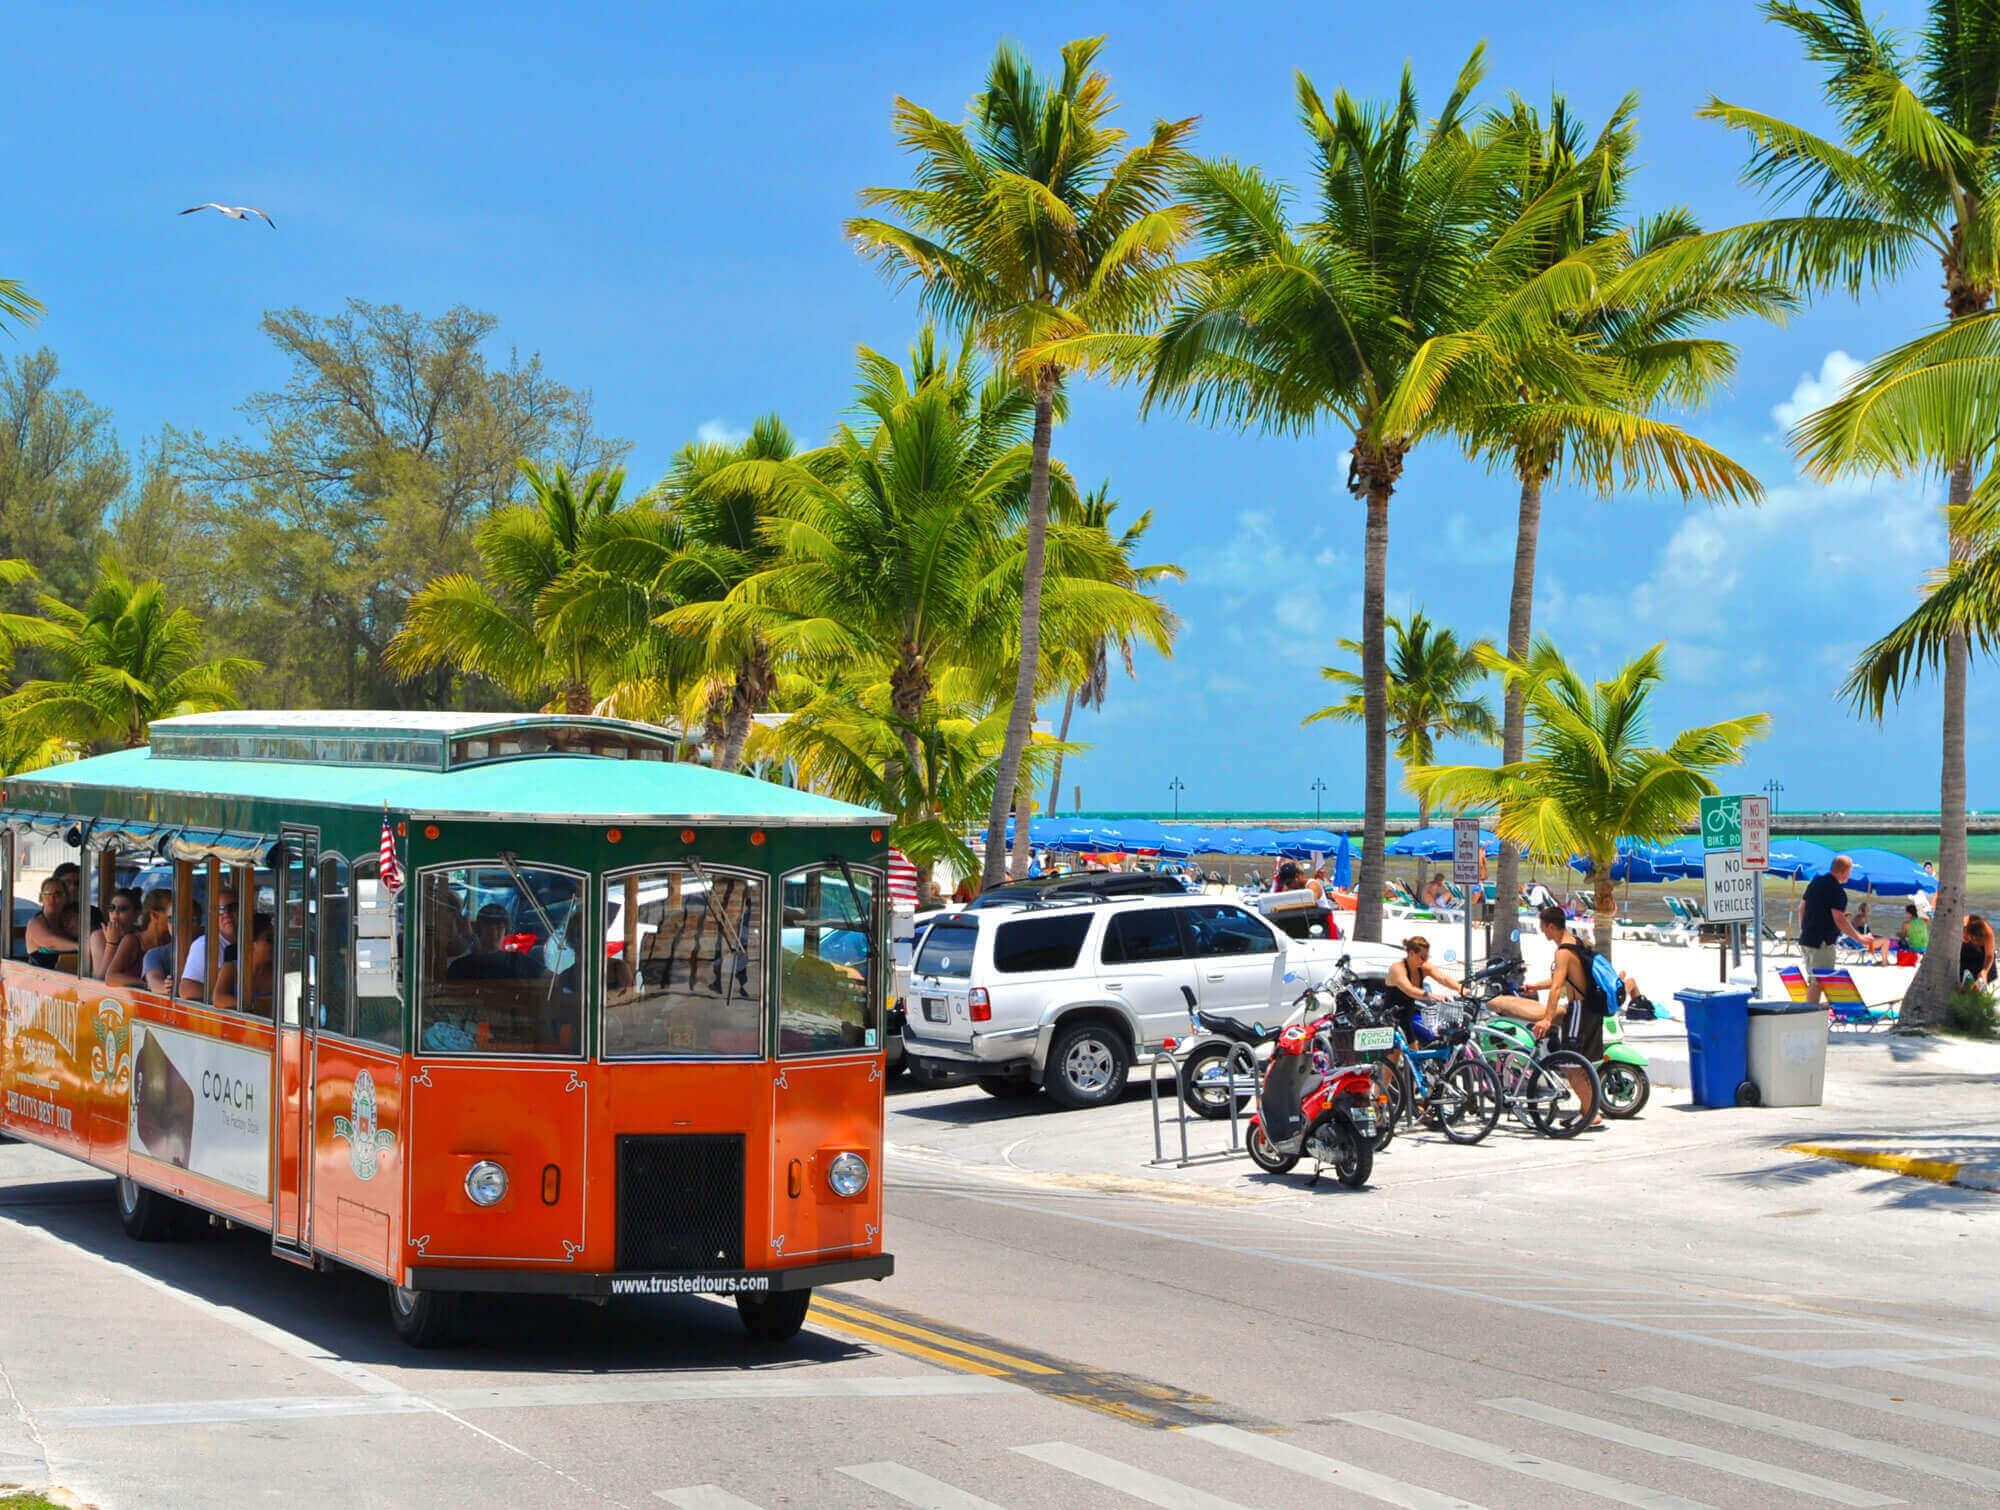 Old Town Trolley driving by a busy beach in Key West, FL